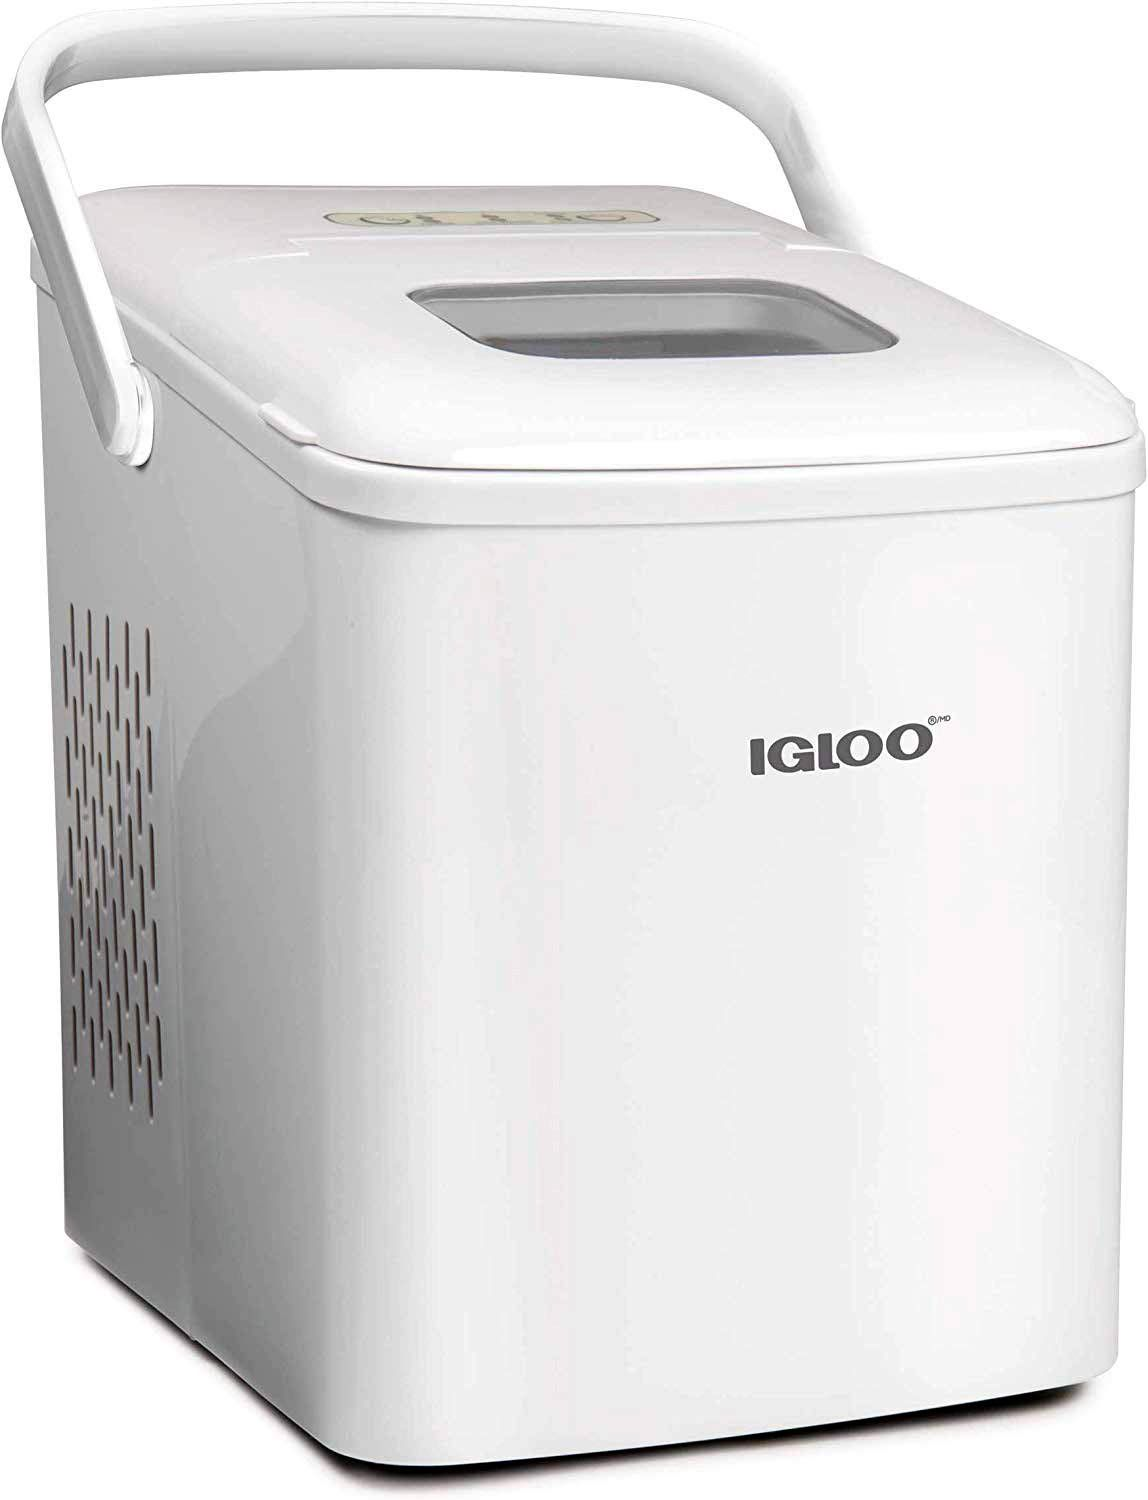 Igloo Iceb26hnwhn Automatic Self Cleaning Portable Electric